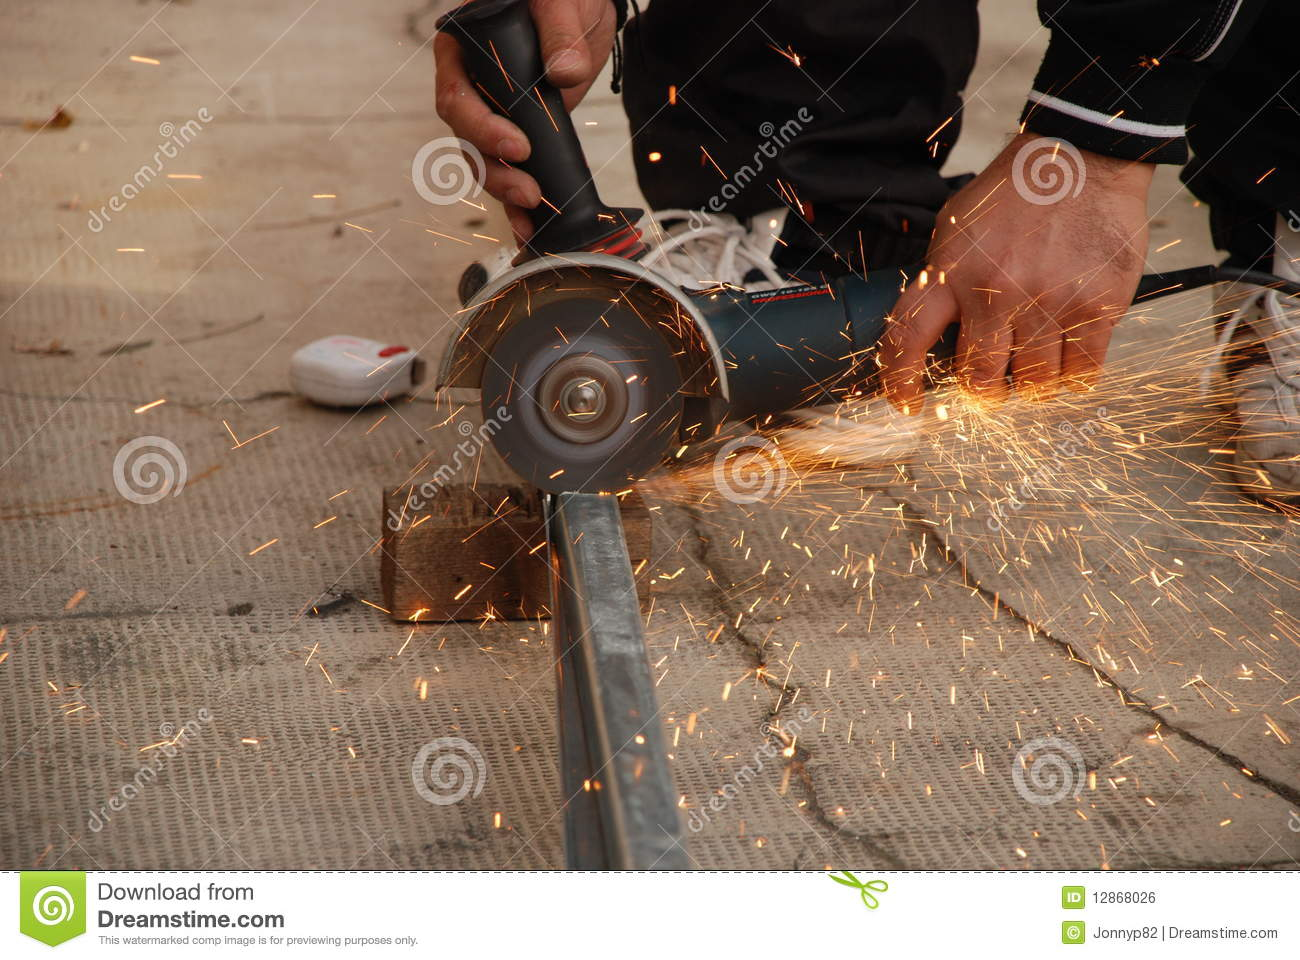 Using angle grinder for sanding